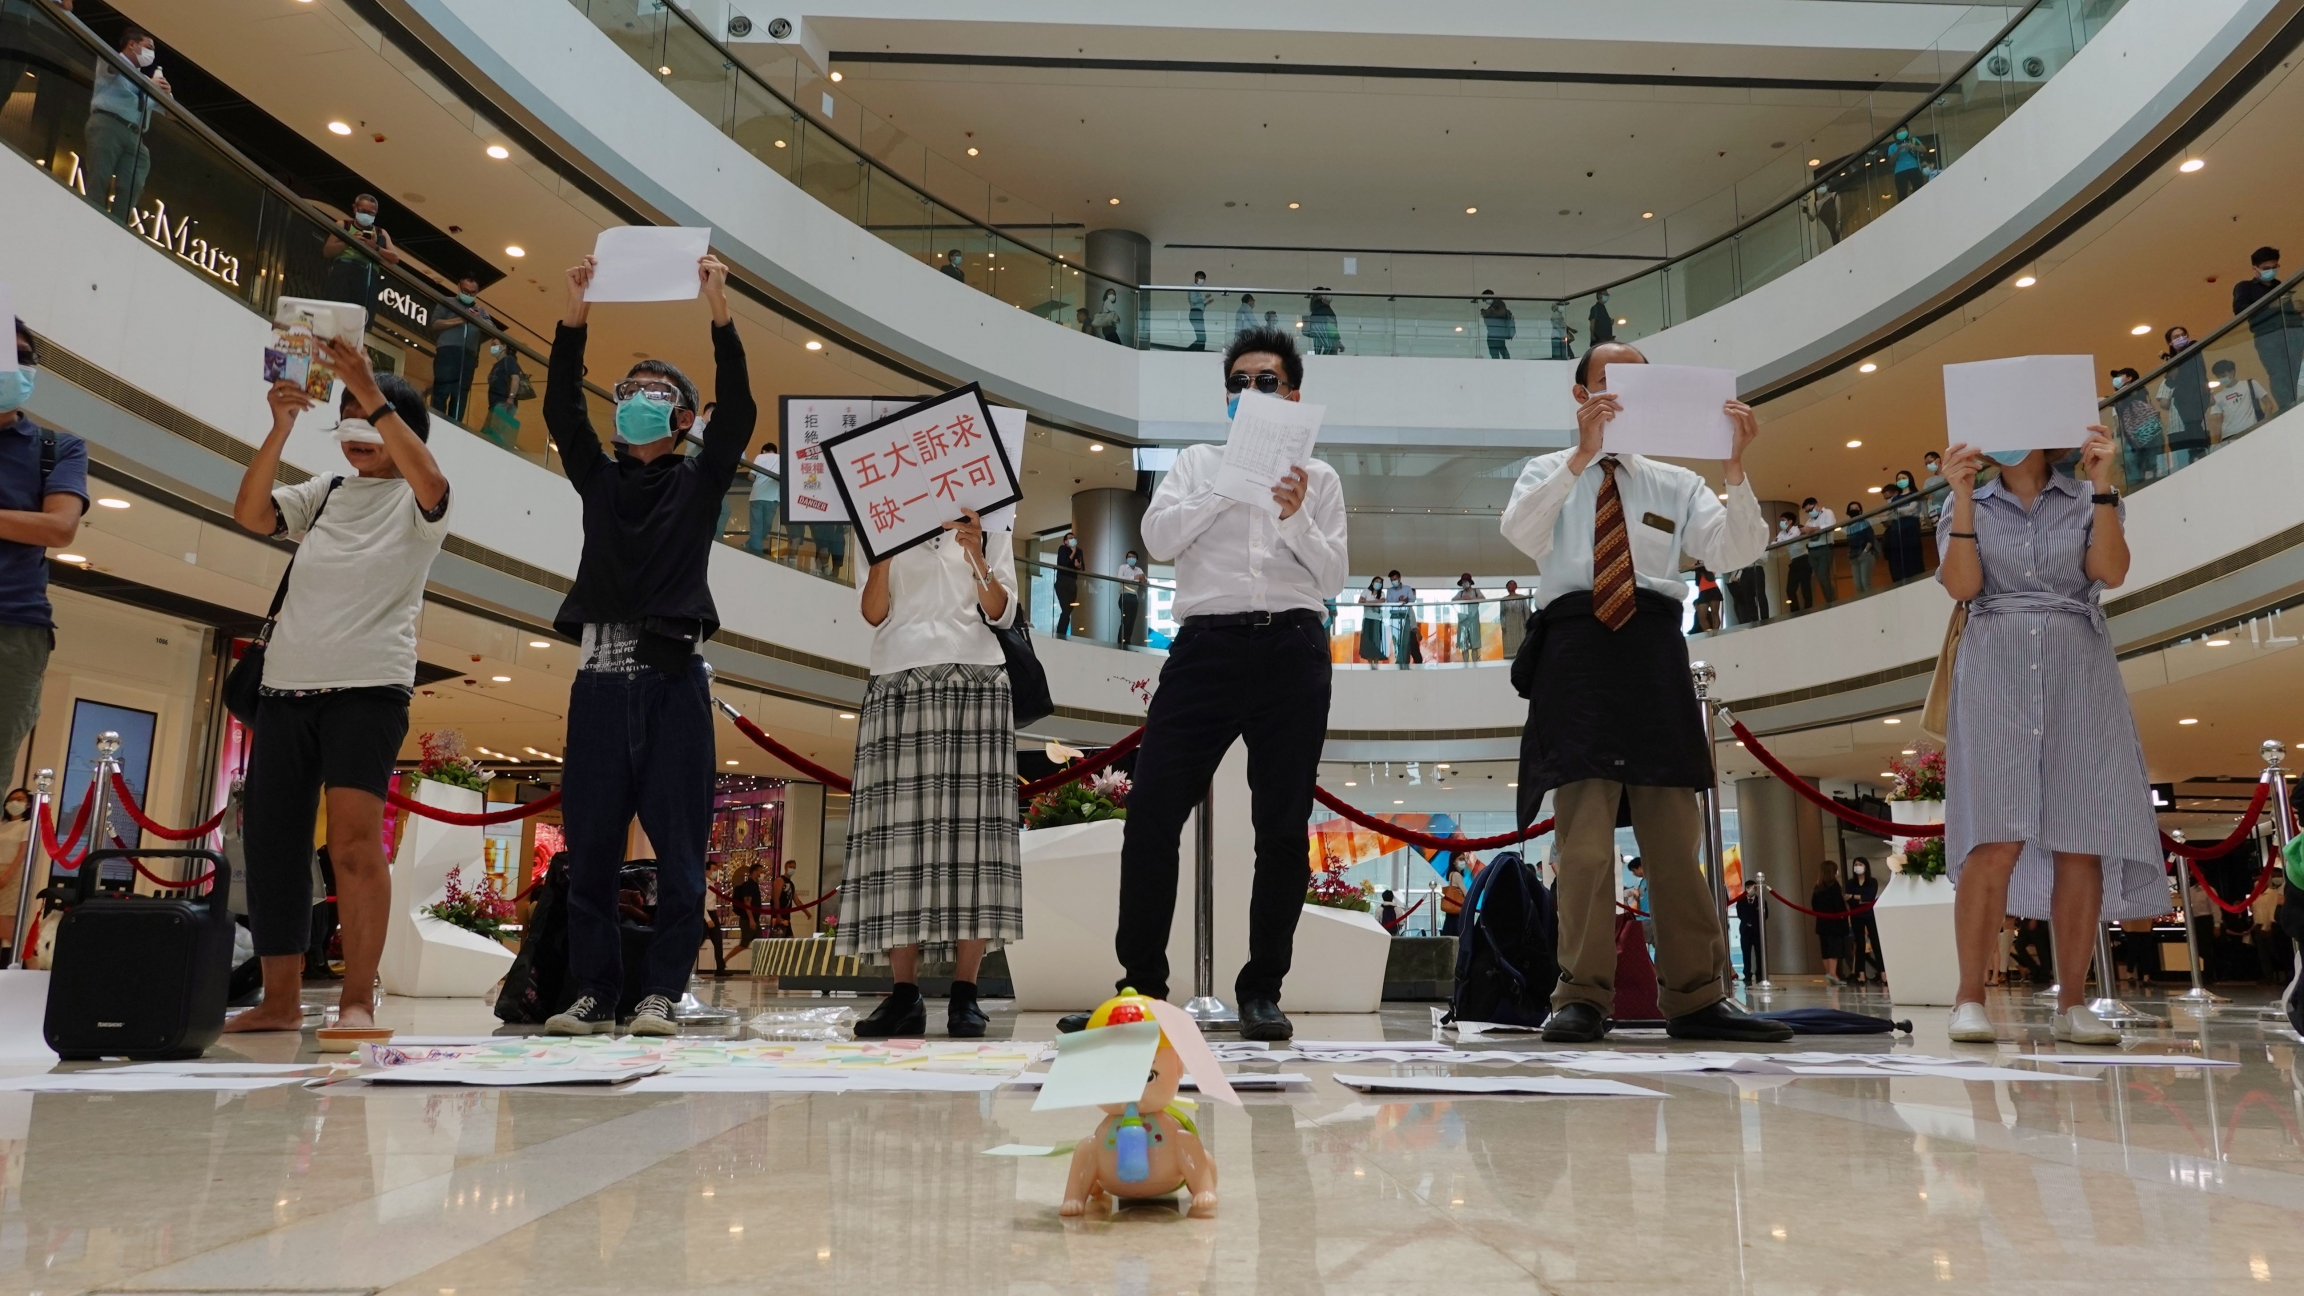 Pro-democracy demonstrators take part in a lunchtime protest against the national security law, at a shopping mall inHongKong, July 6, 2020.